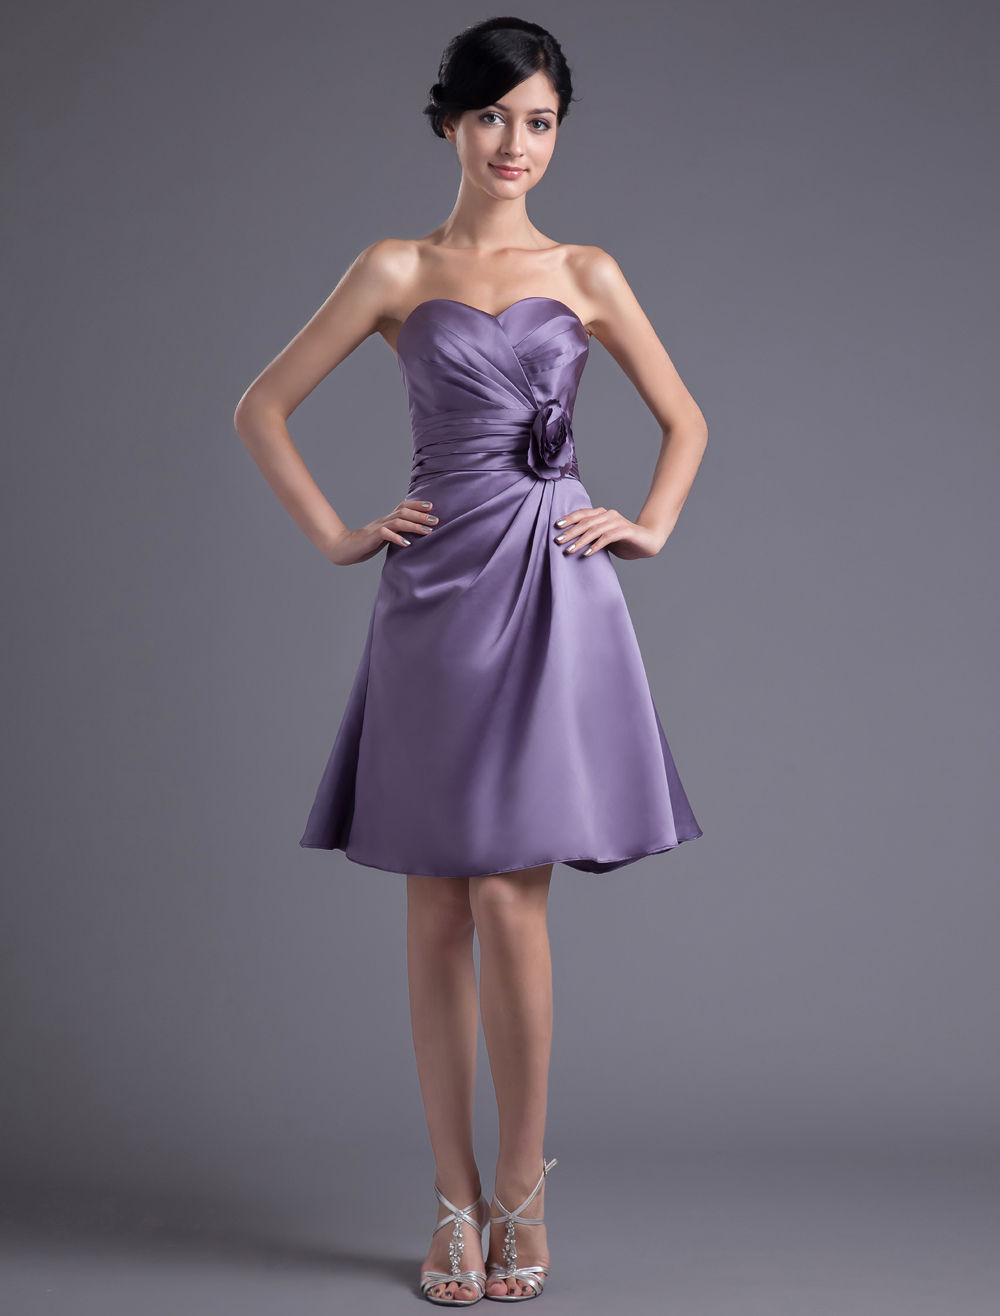 A-line Lilac Satin Floral Sweetheart Knee-Length Wedding Bridesmaid Dress